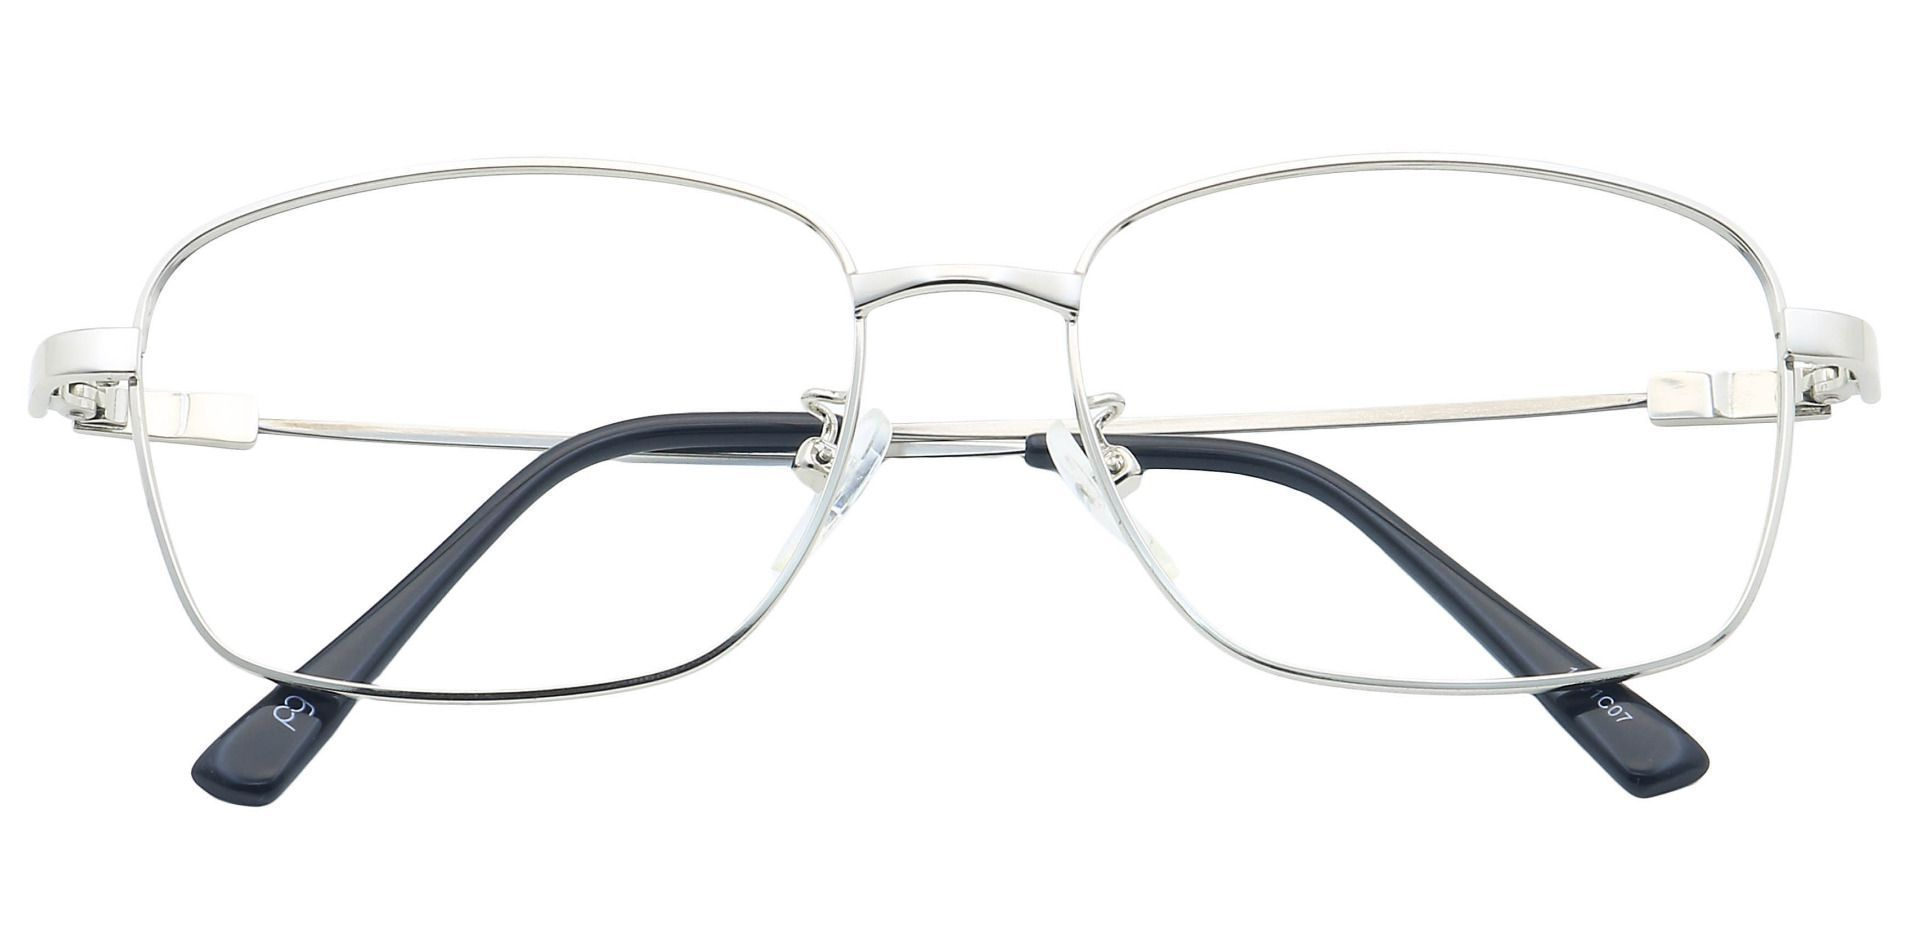 Sidley Square Blue Light Blocking Glasses - Clear